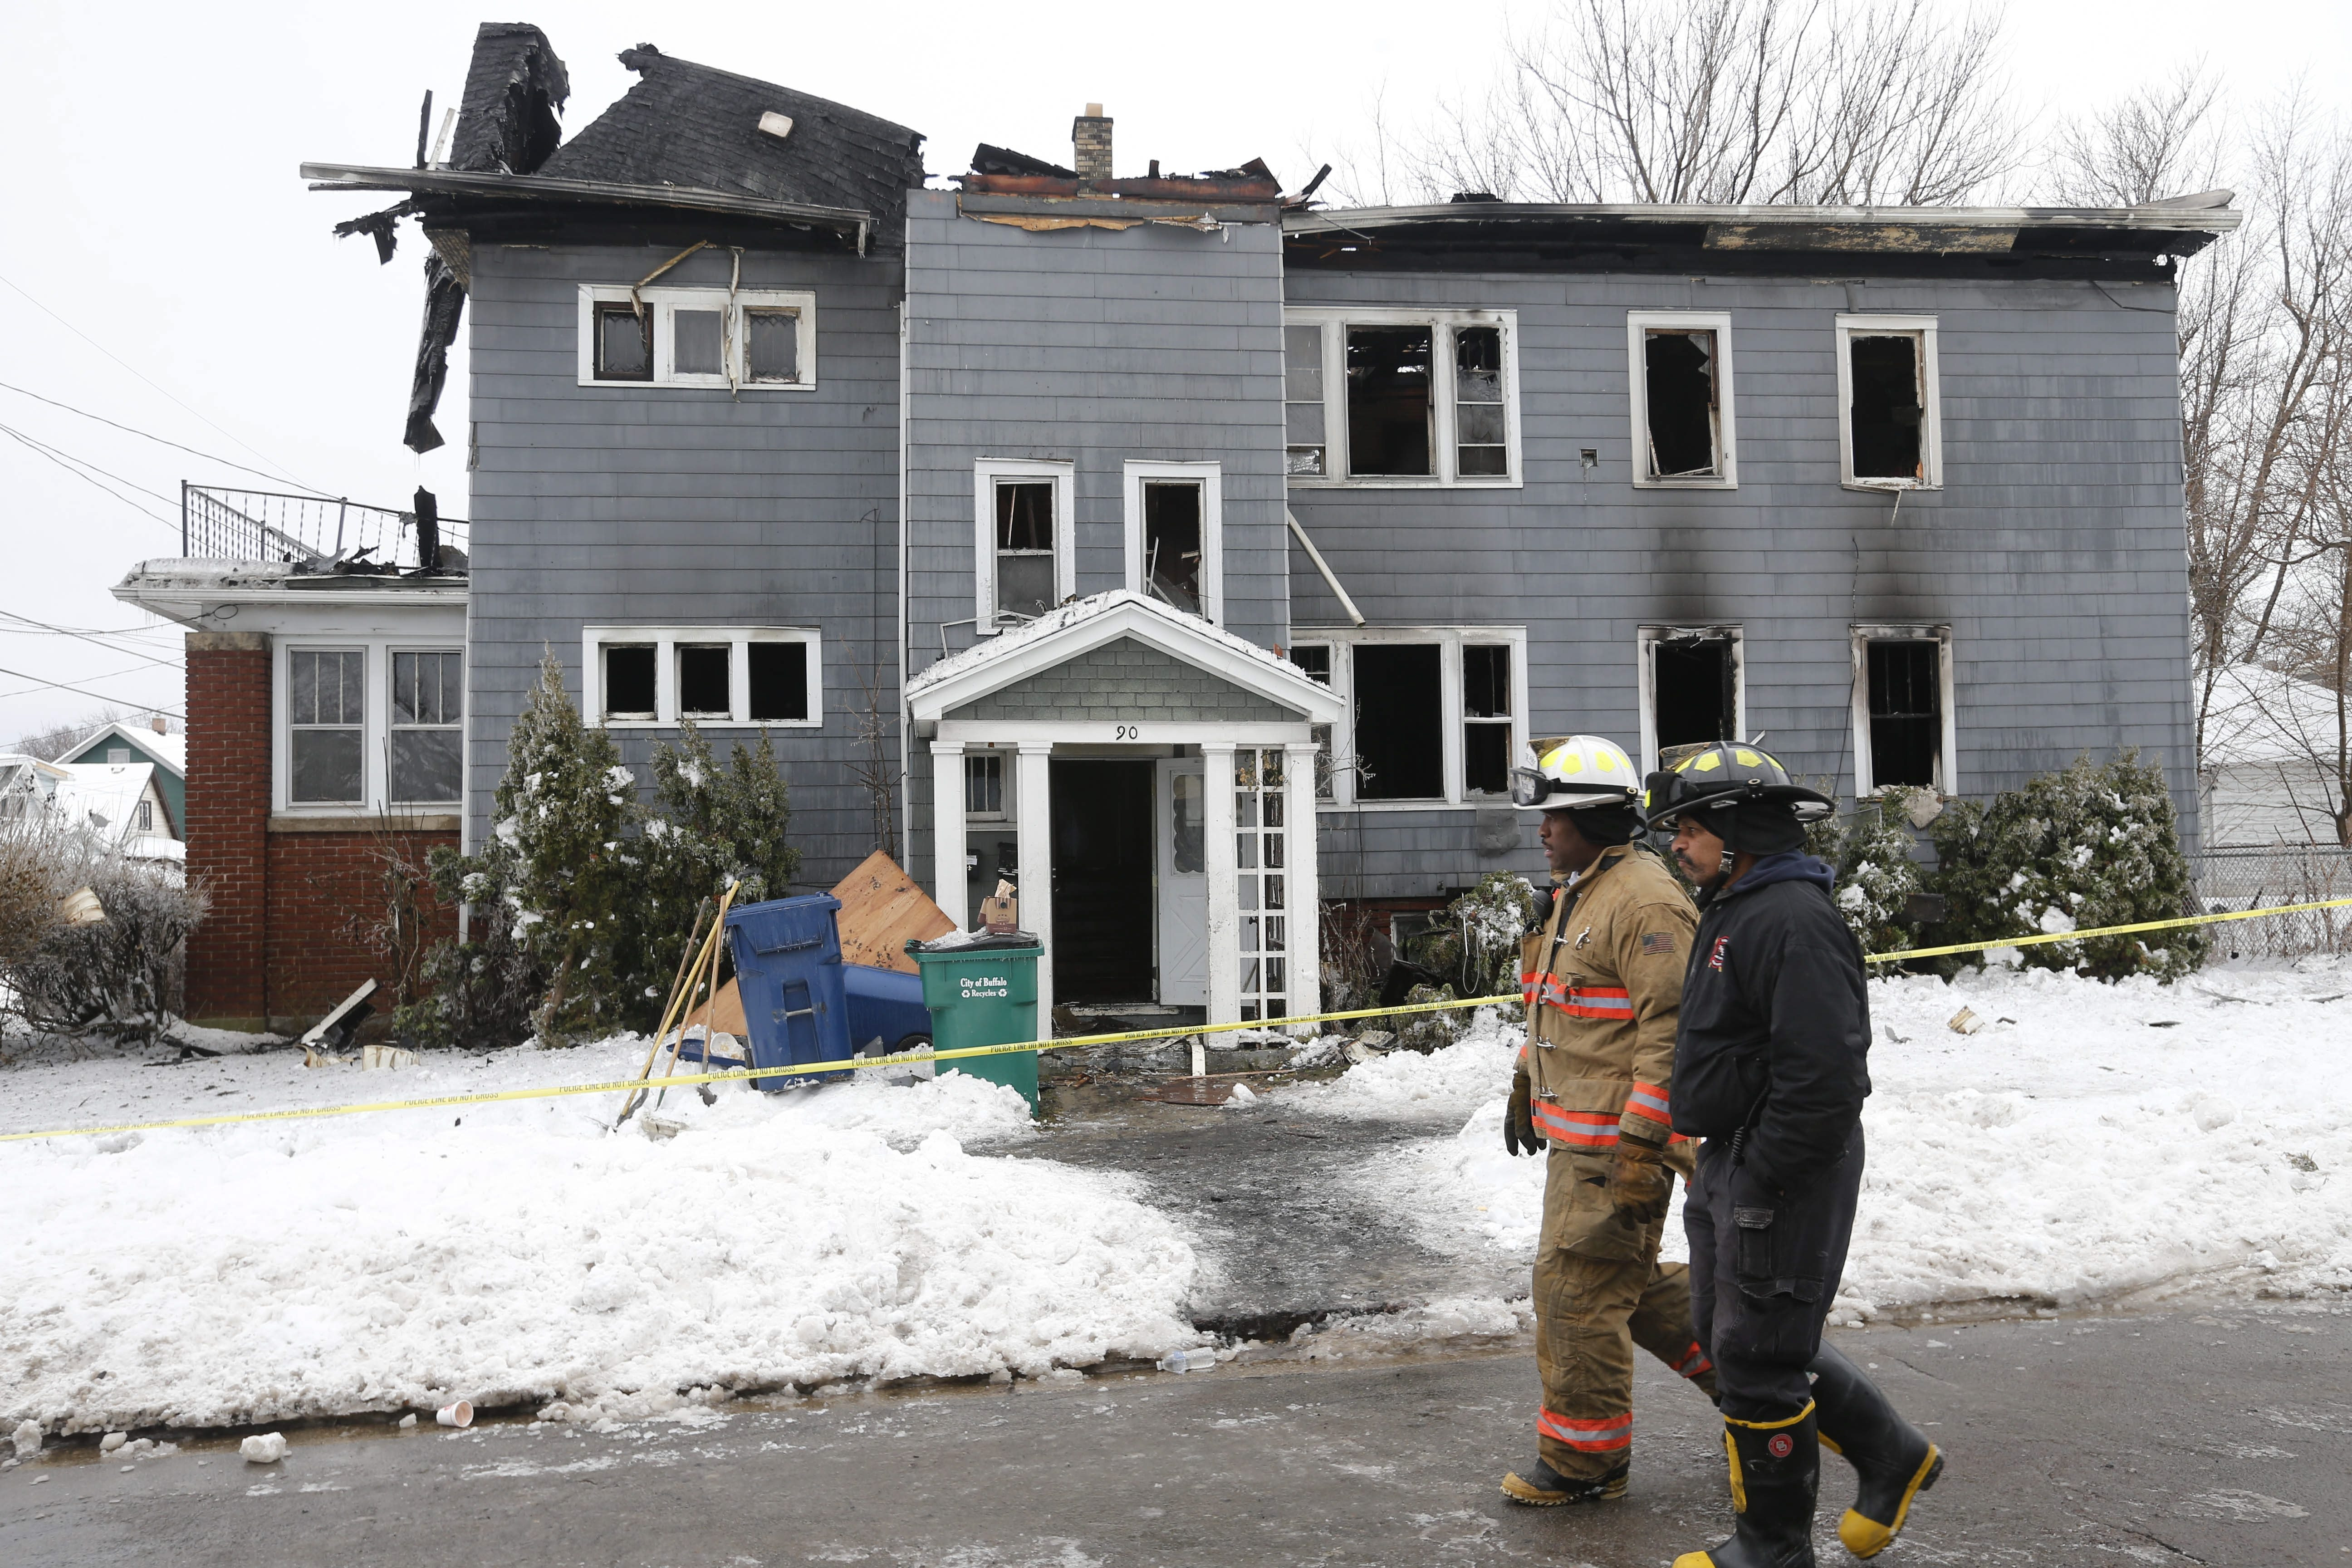 Investigators search for evidence after a fire tore through 90 Humber Ave. early Friday morning, killing two and critically injuring 9-year-old Treasure Brighon.